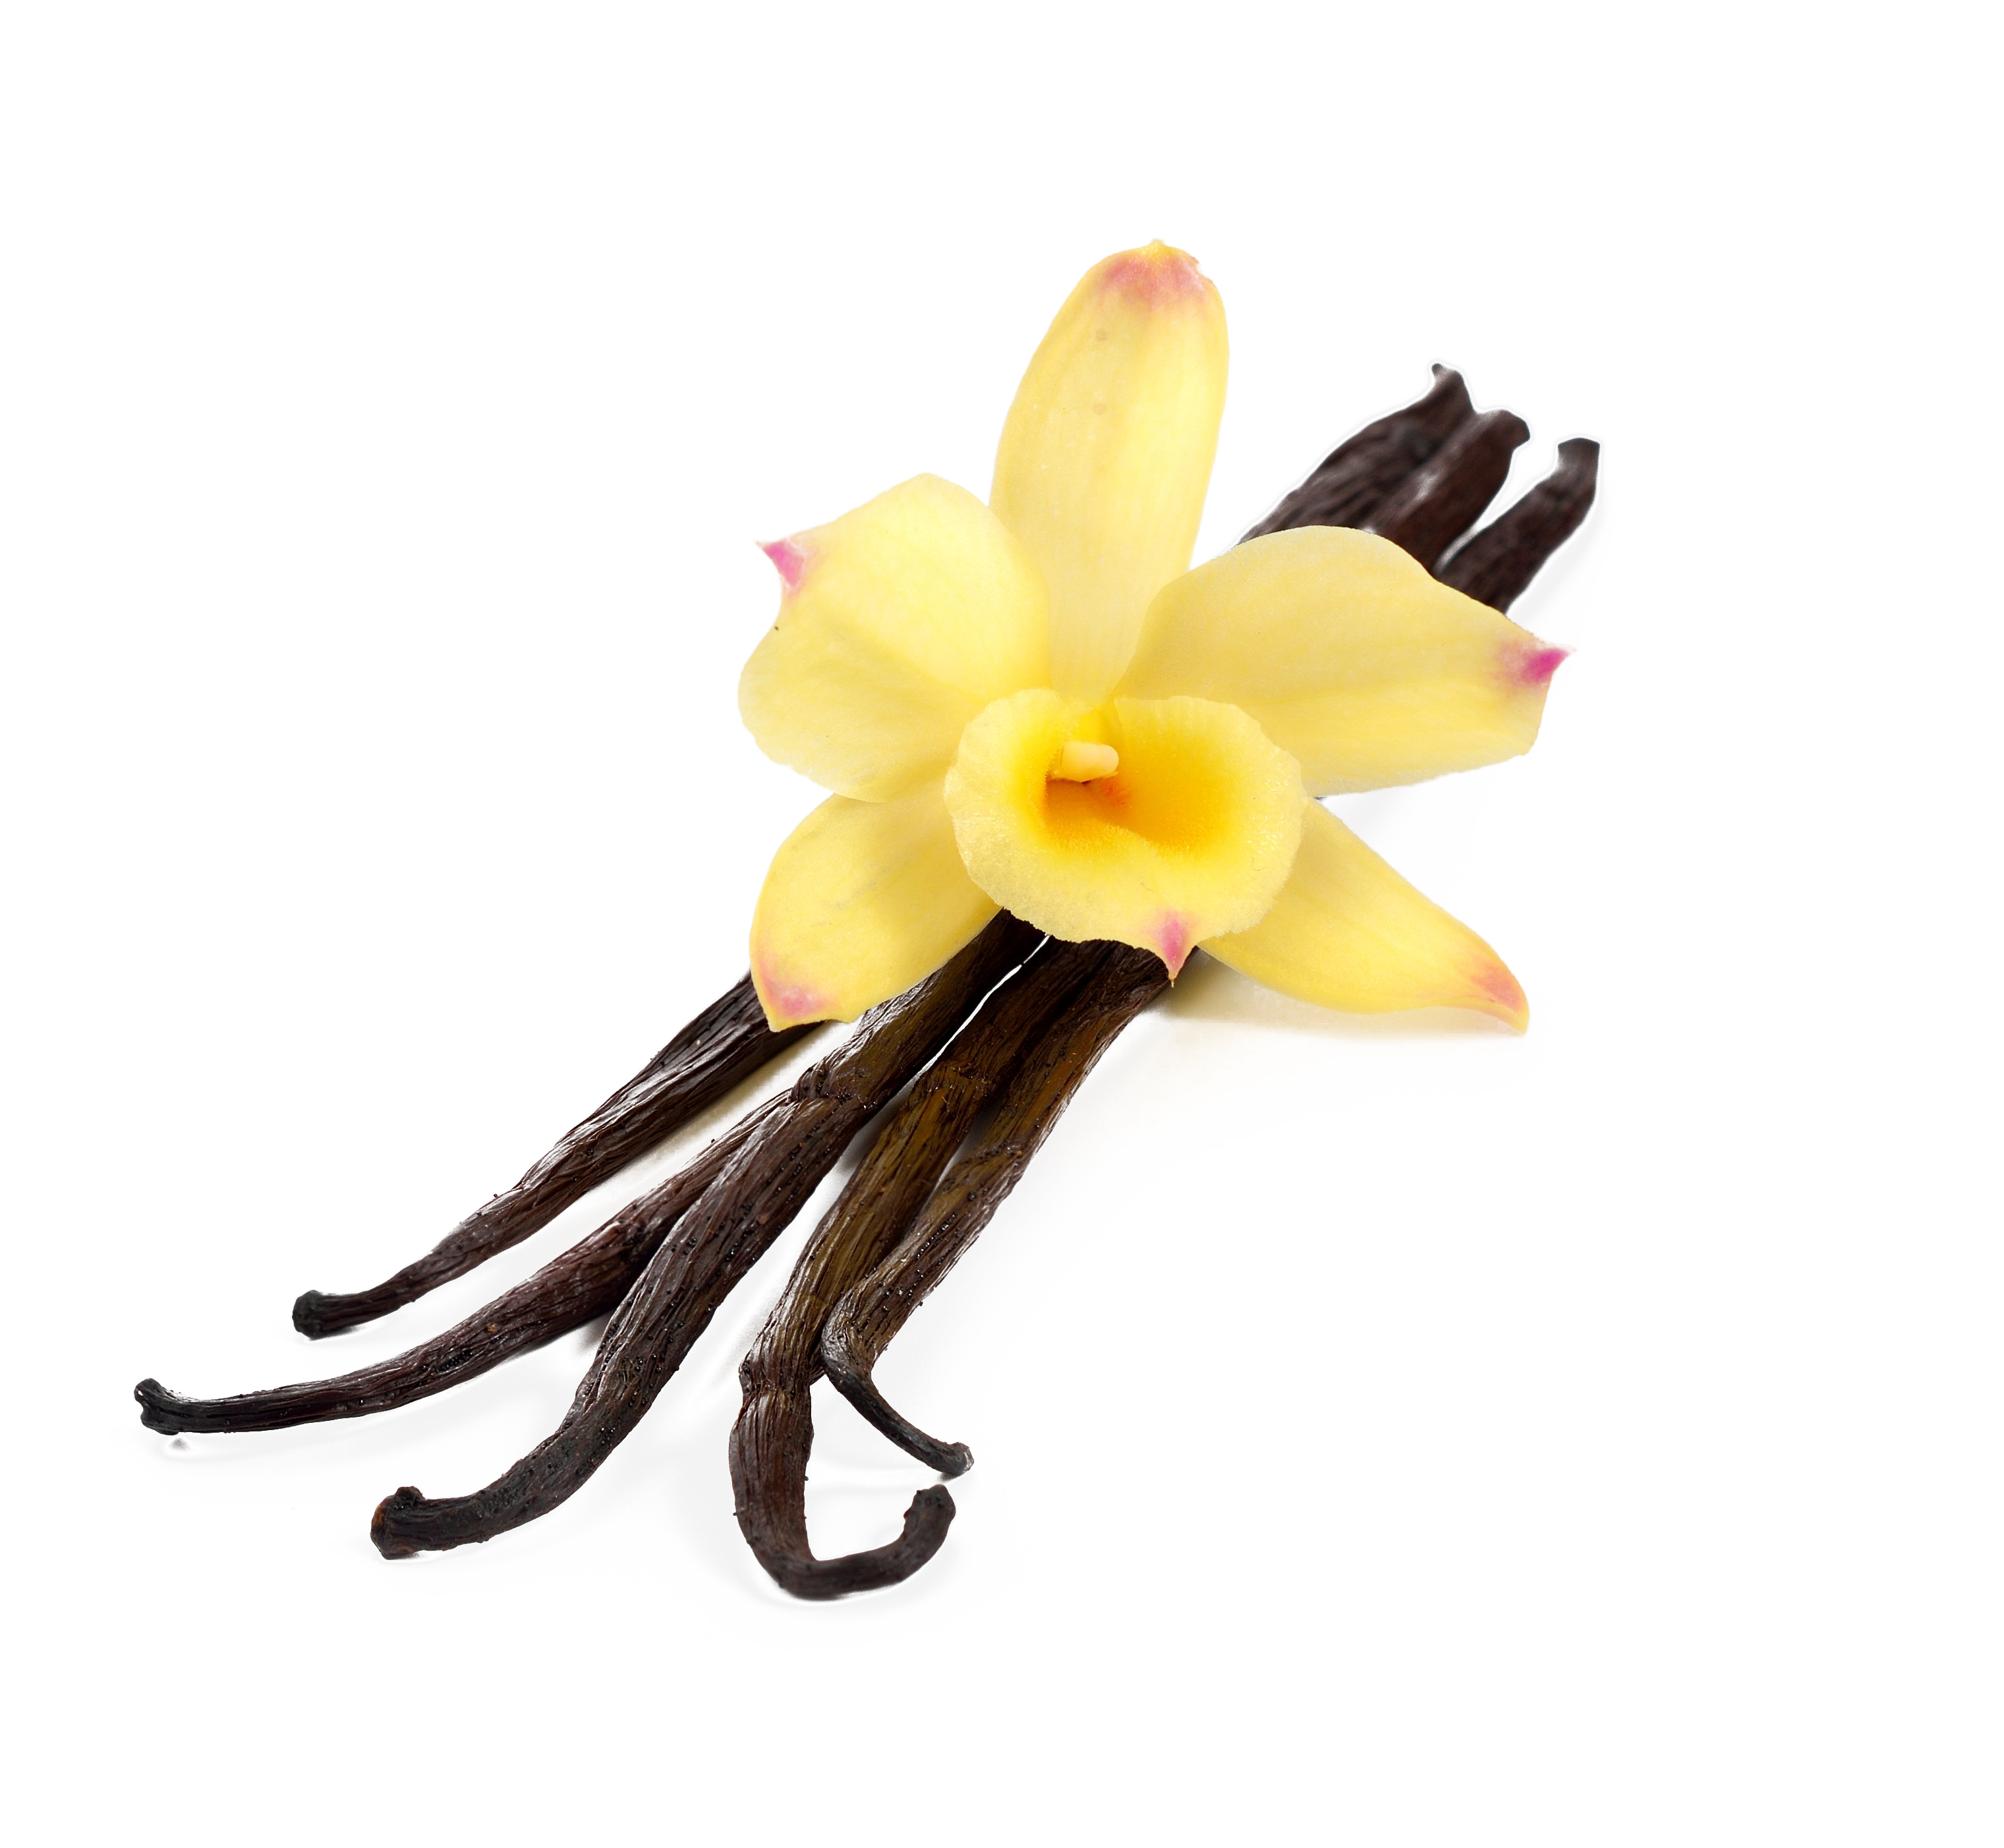 Flavor extract stock photography. Vanilla flower png